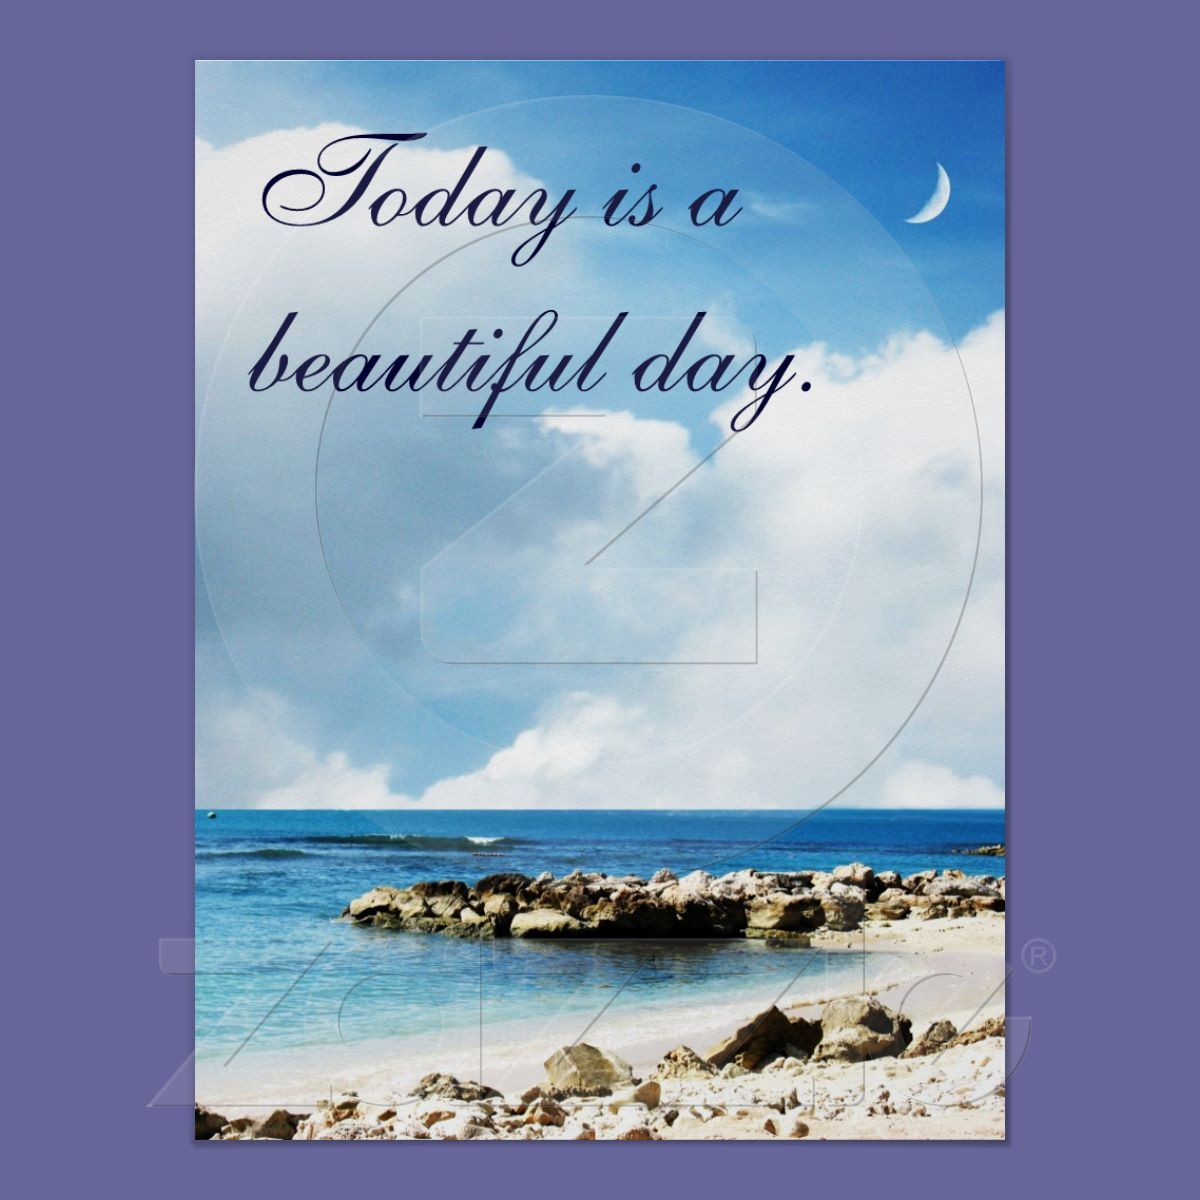 It's a Beautiful Day Coastline Ocean Poster from Zazzle.com